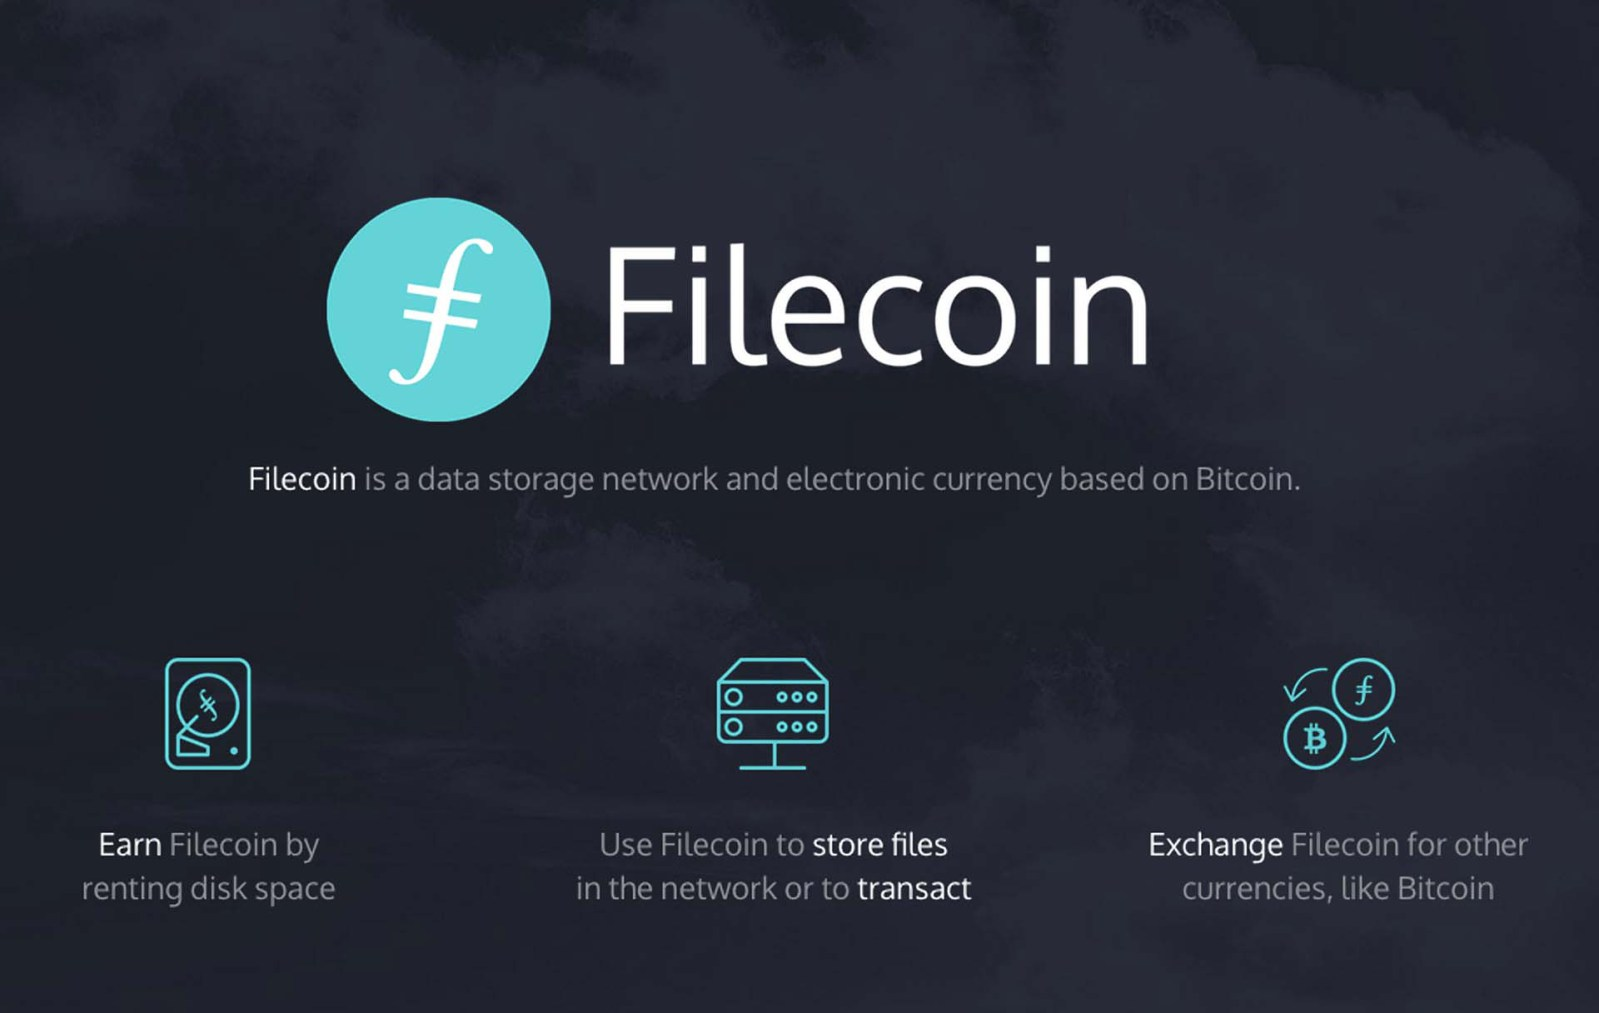 Bitcoin-Filecoin-ICO